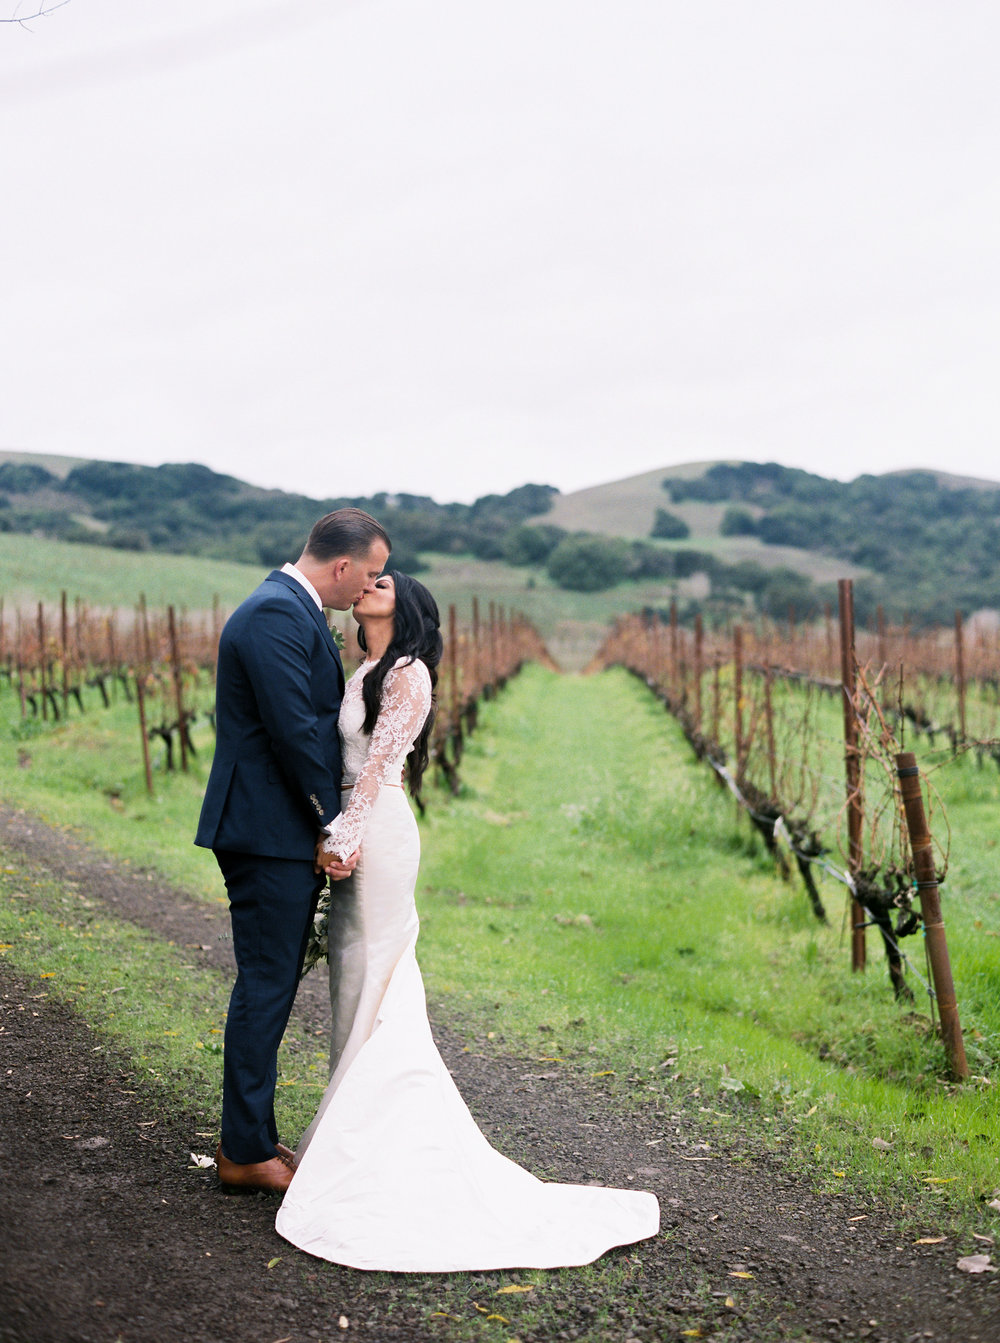 romantic-wedding-at-cline-winery-in-sonoma-california-1-10.jpg